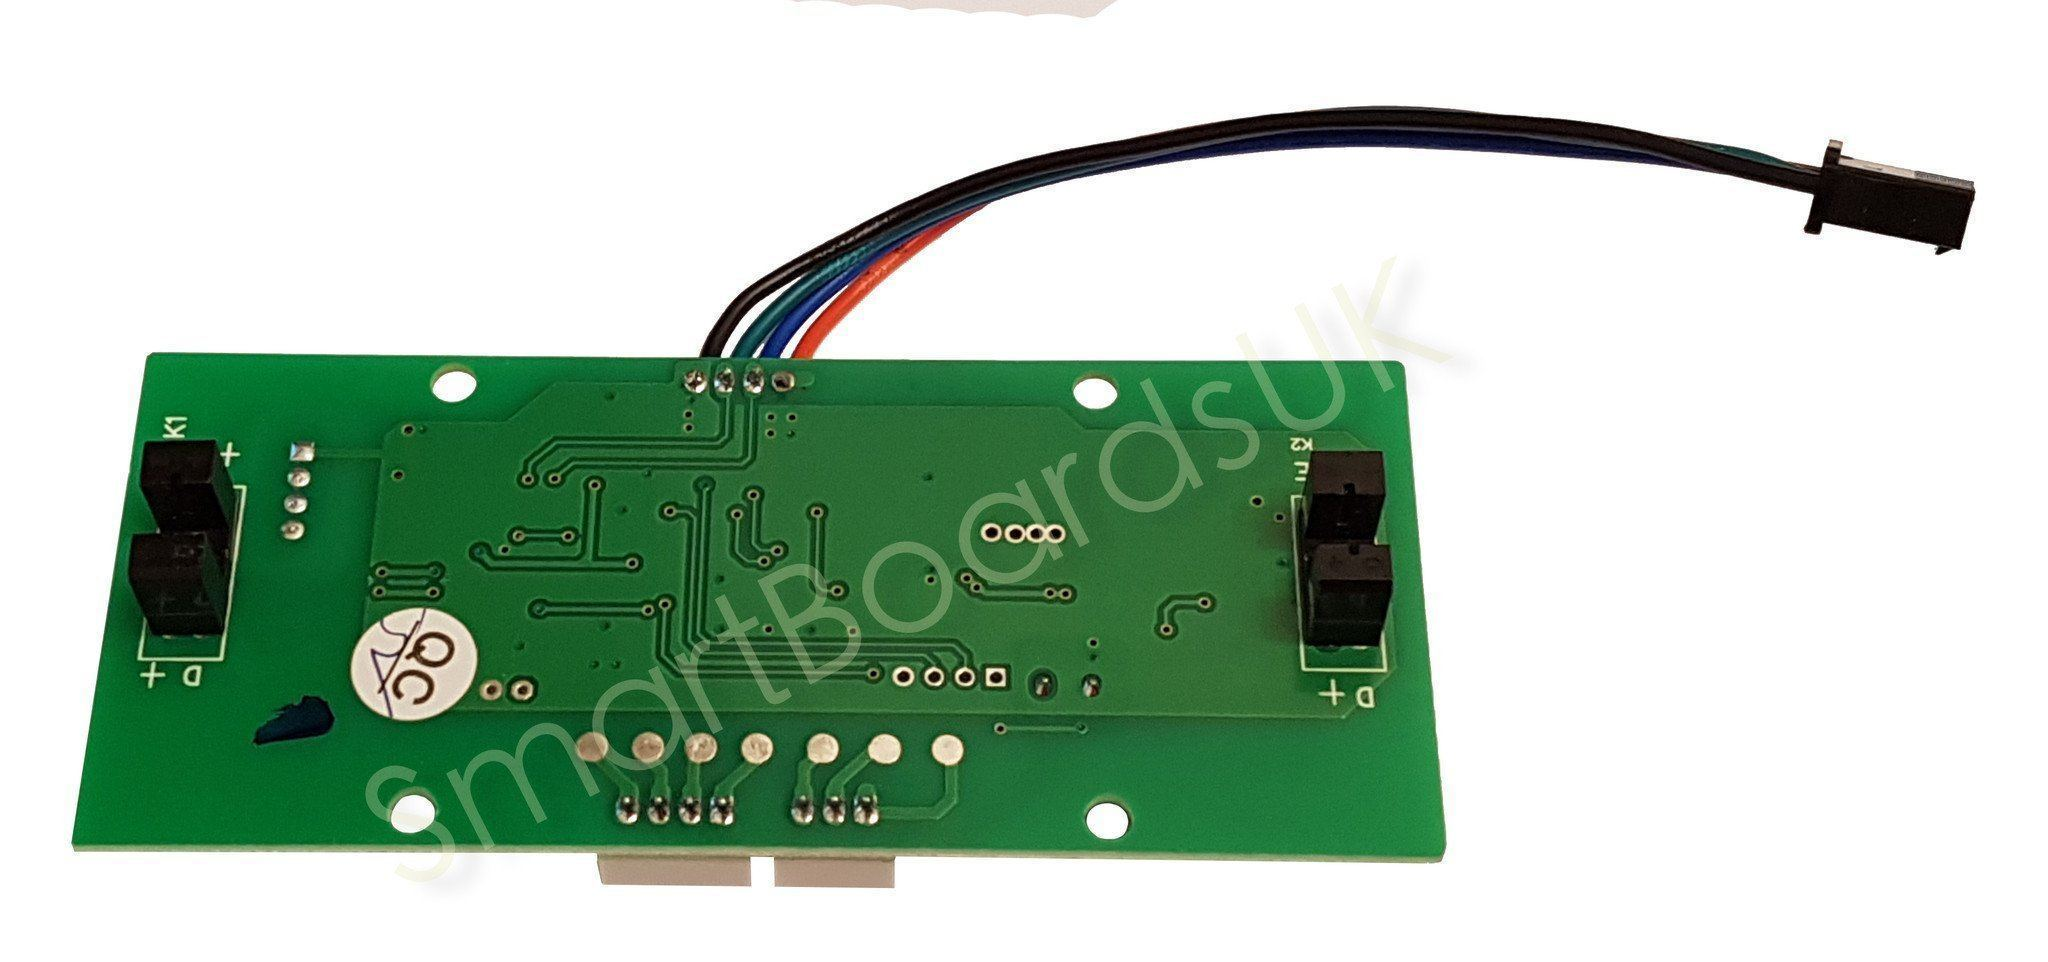 FULL REPLACEMENT CIRCUIT BOARD REPAIR KIT-Smart Boards UK